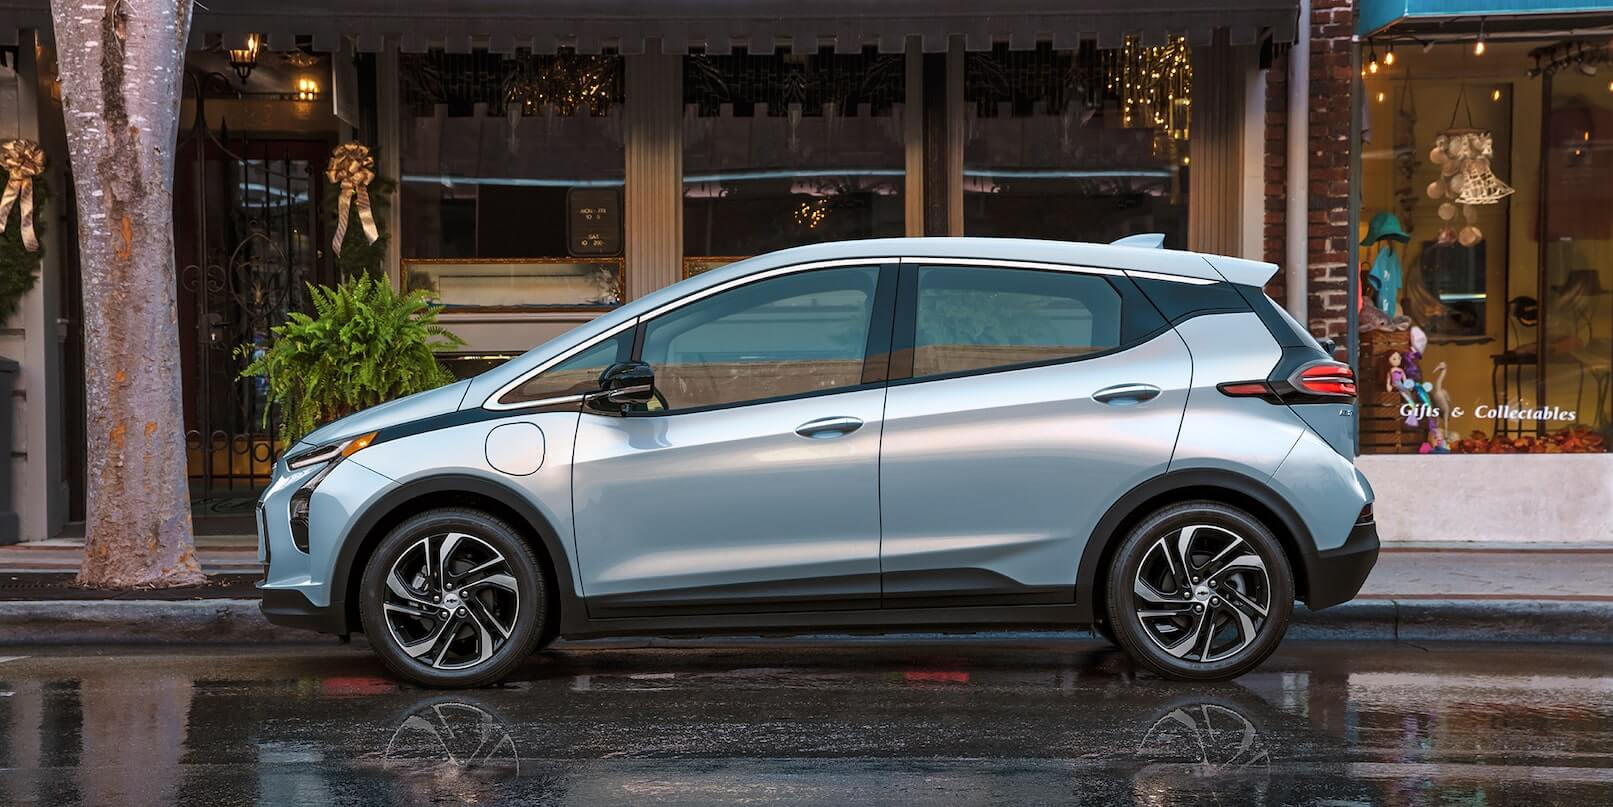 Left-side exterior view of the 2022 Chevrolet Bolt EV parked on the road.